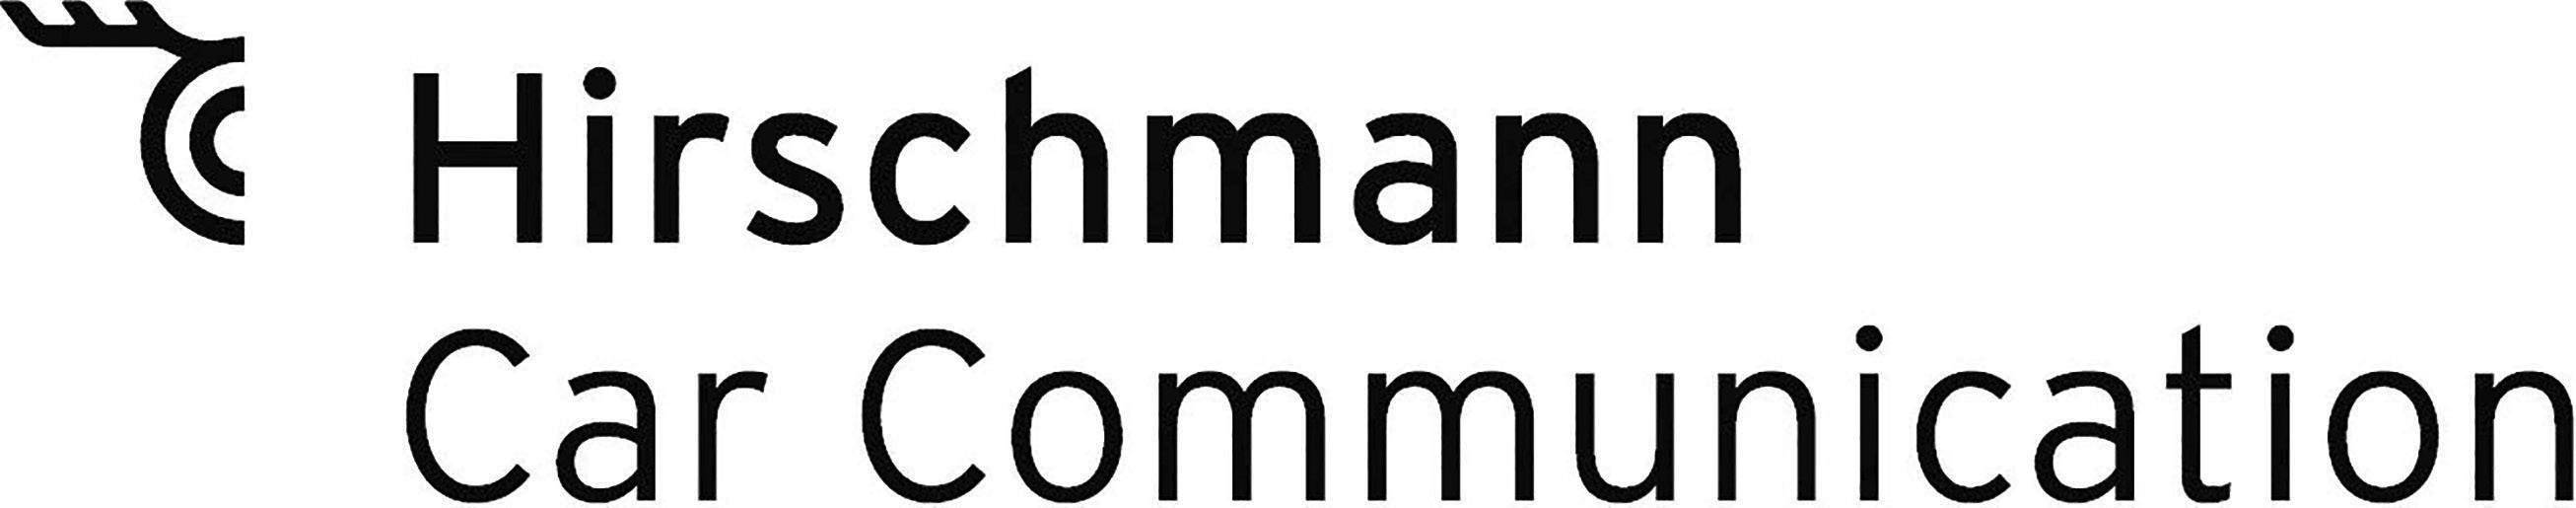 Hirschmann Car Communication